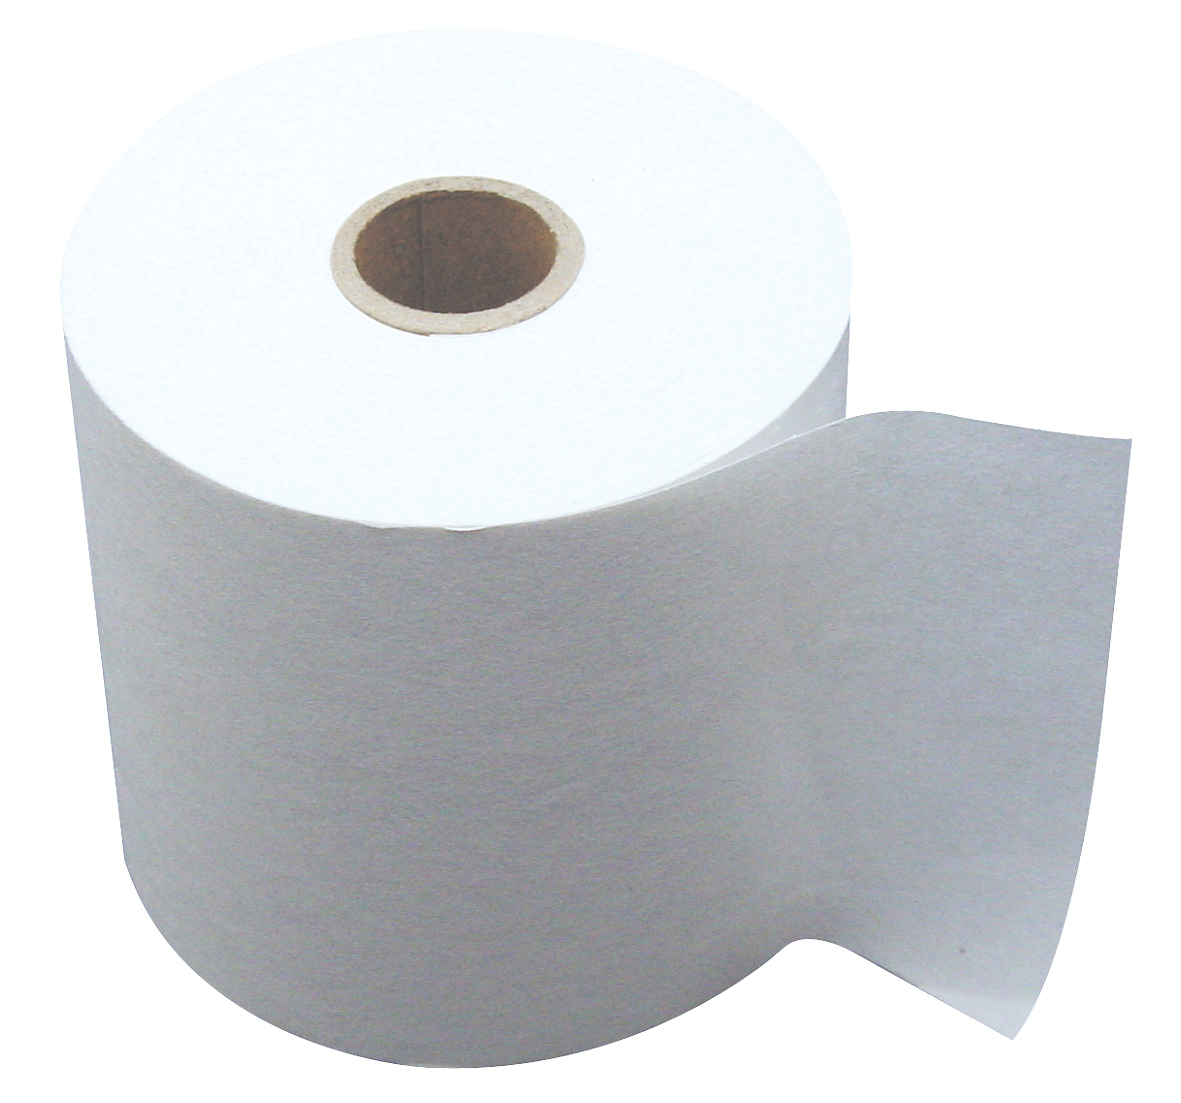 80mm x 80mm PINK Thermal Paper Rolls (Box of 20)